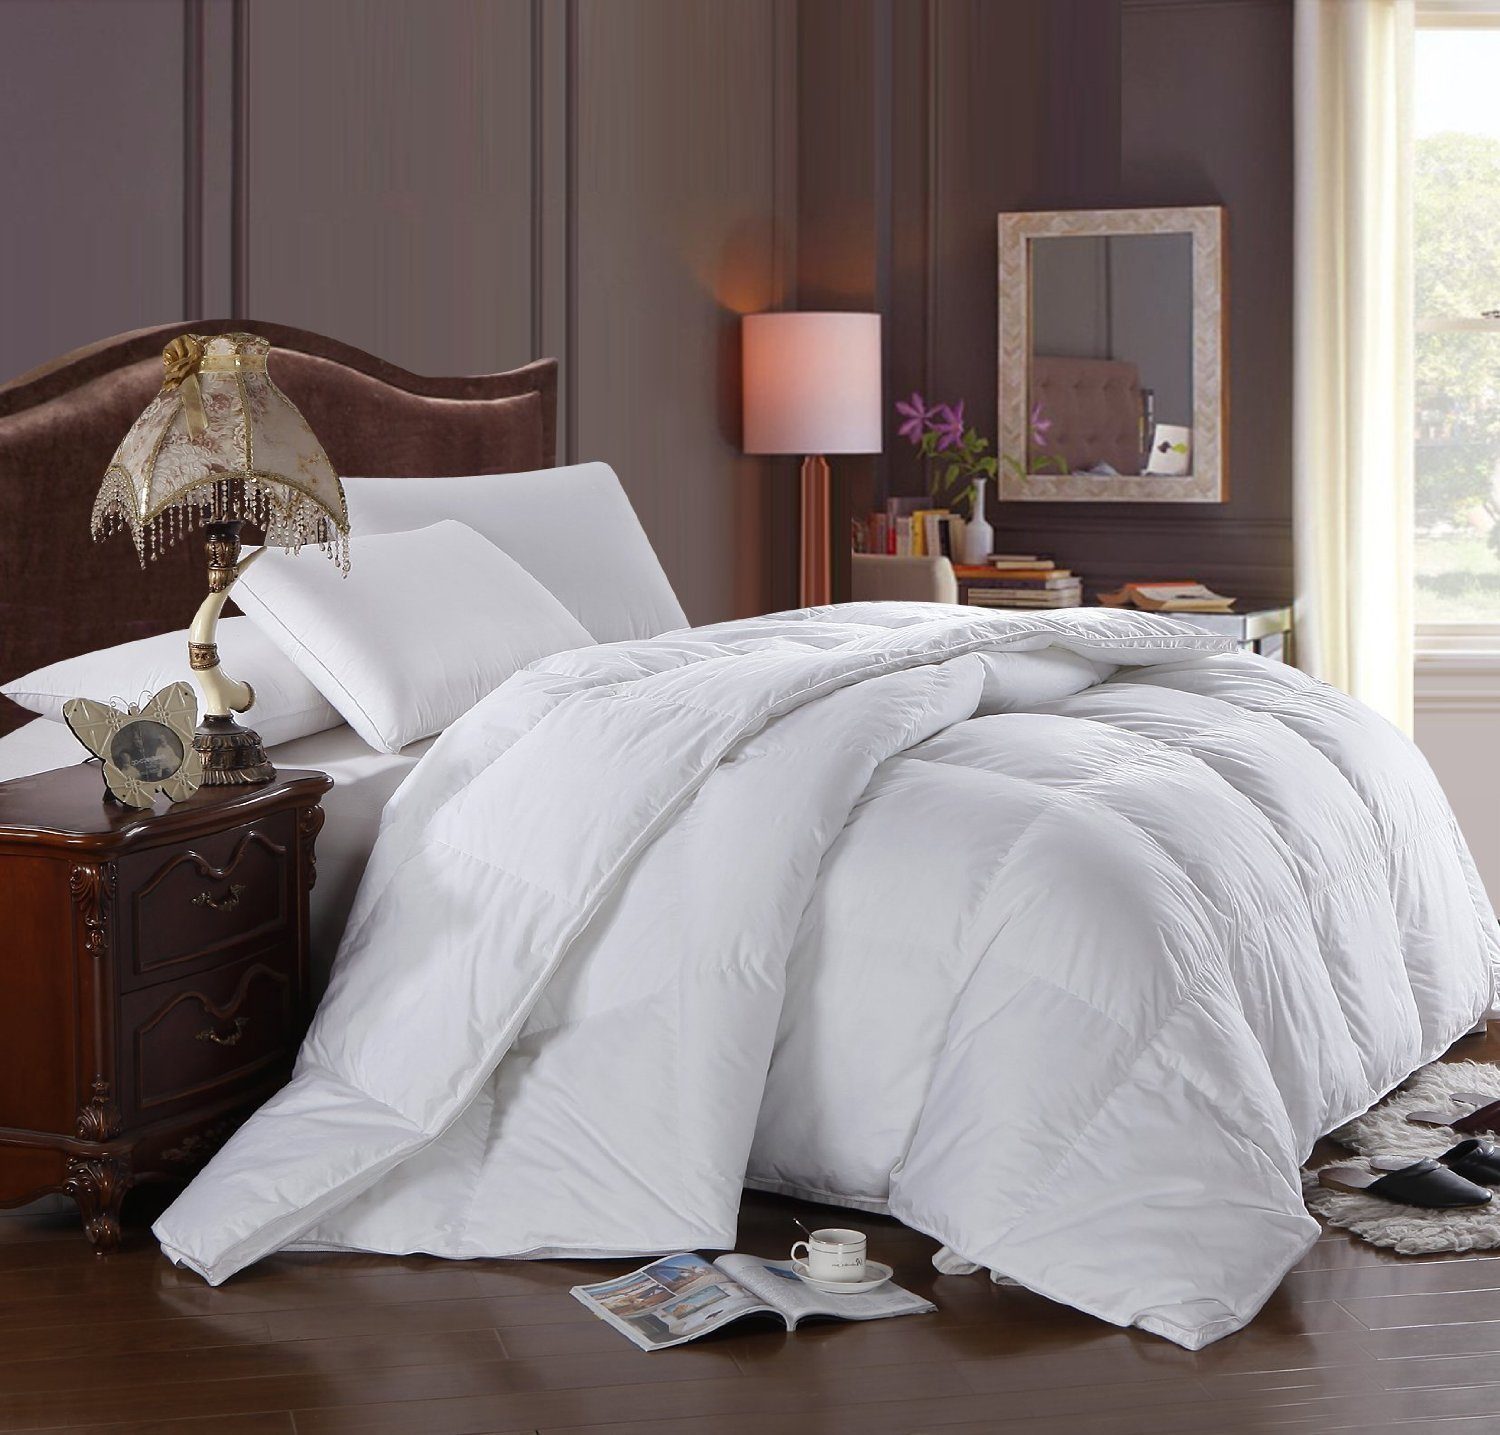 Royal Hotel Super Oversized - Soft and Fluffy Goose Down Alternative Comforter - Fits Pillow Top Beds - King 110'' x 98'' 100-Percent Cotton Shell - Medium Warmth - By